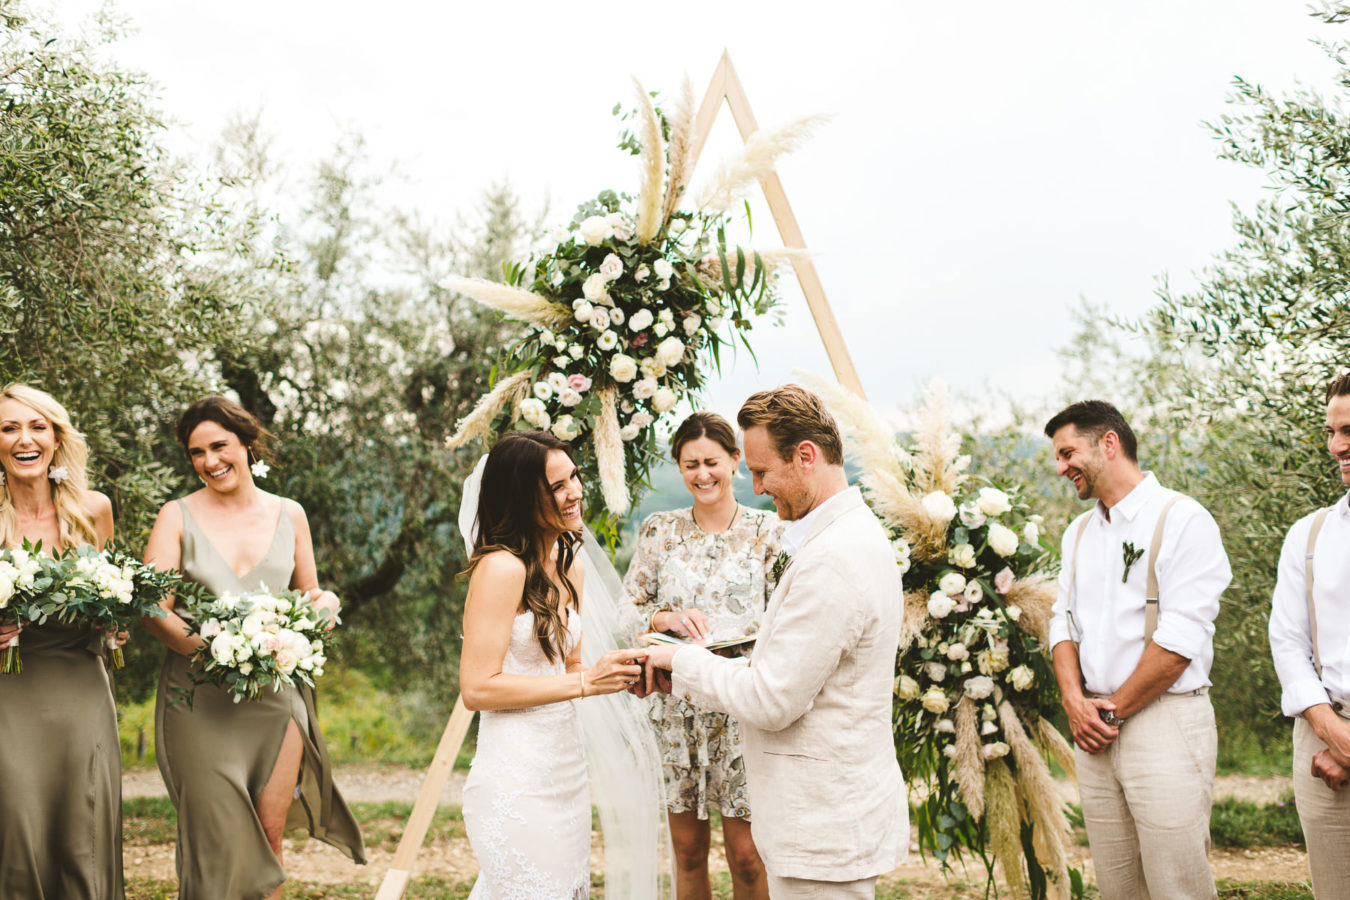 Modern and unusual wedding framed by the olive groves of Chianti. Intimate romantic and elegant destination wedding in Tuscany at historic residence of Villa Il Poggiale